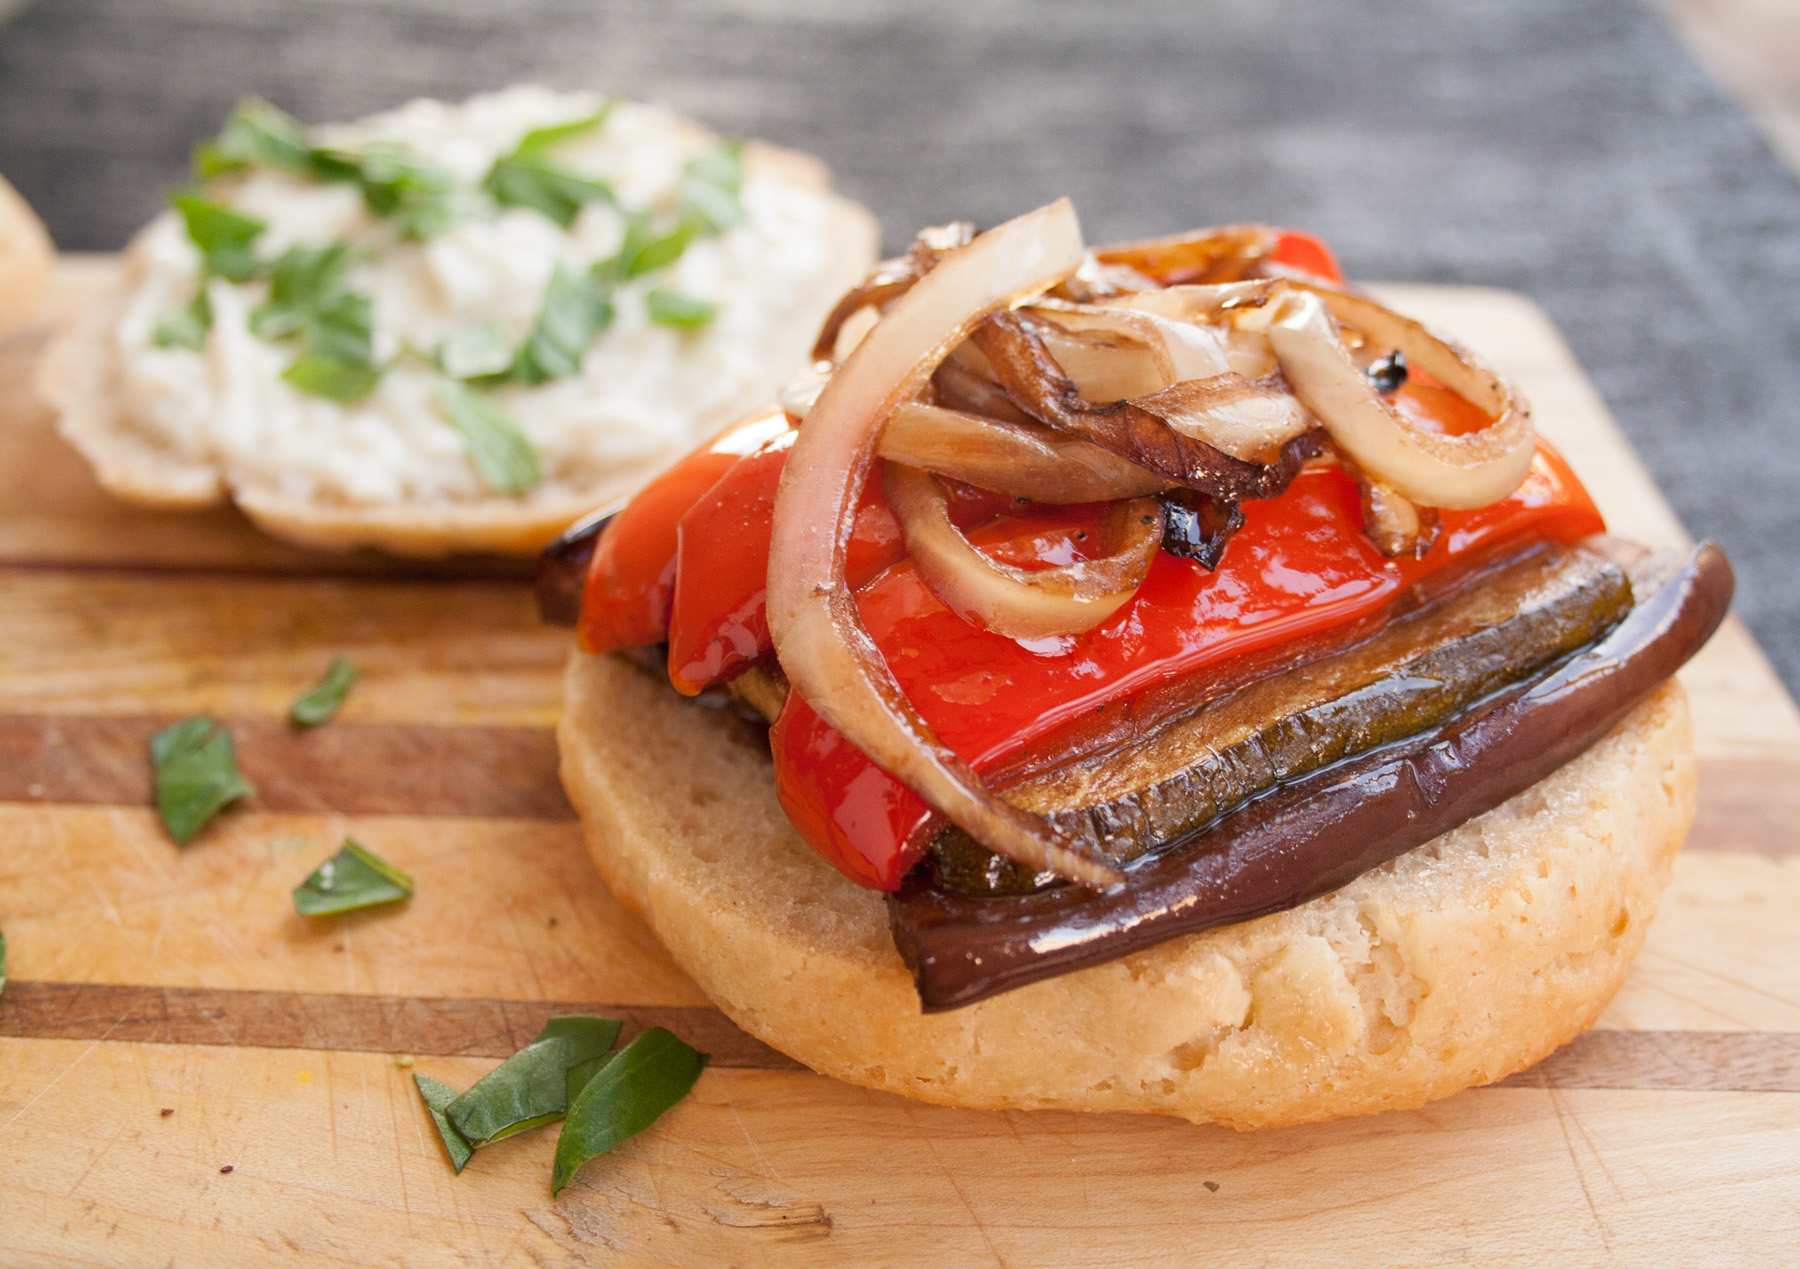 Balsamic Roasted Vegetable Sandwich